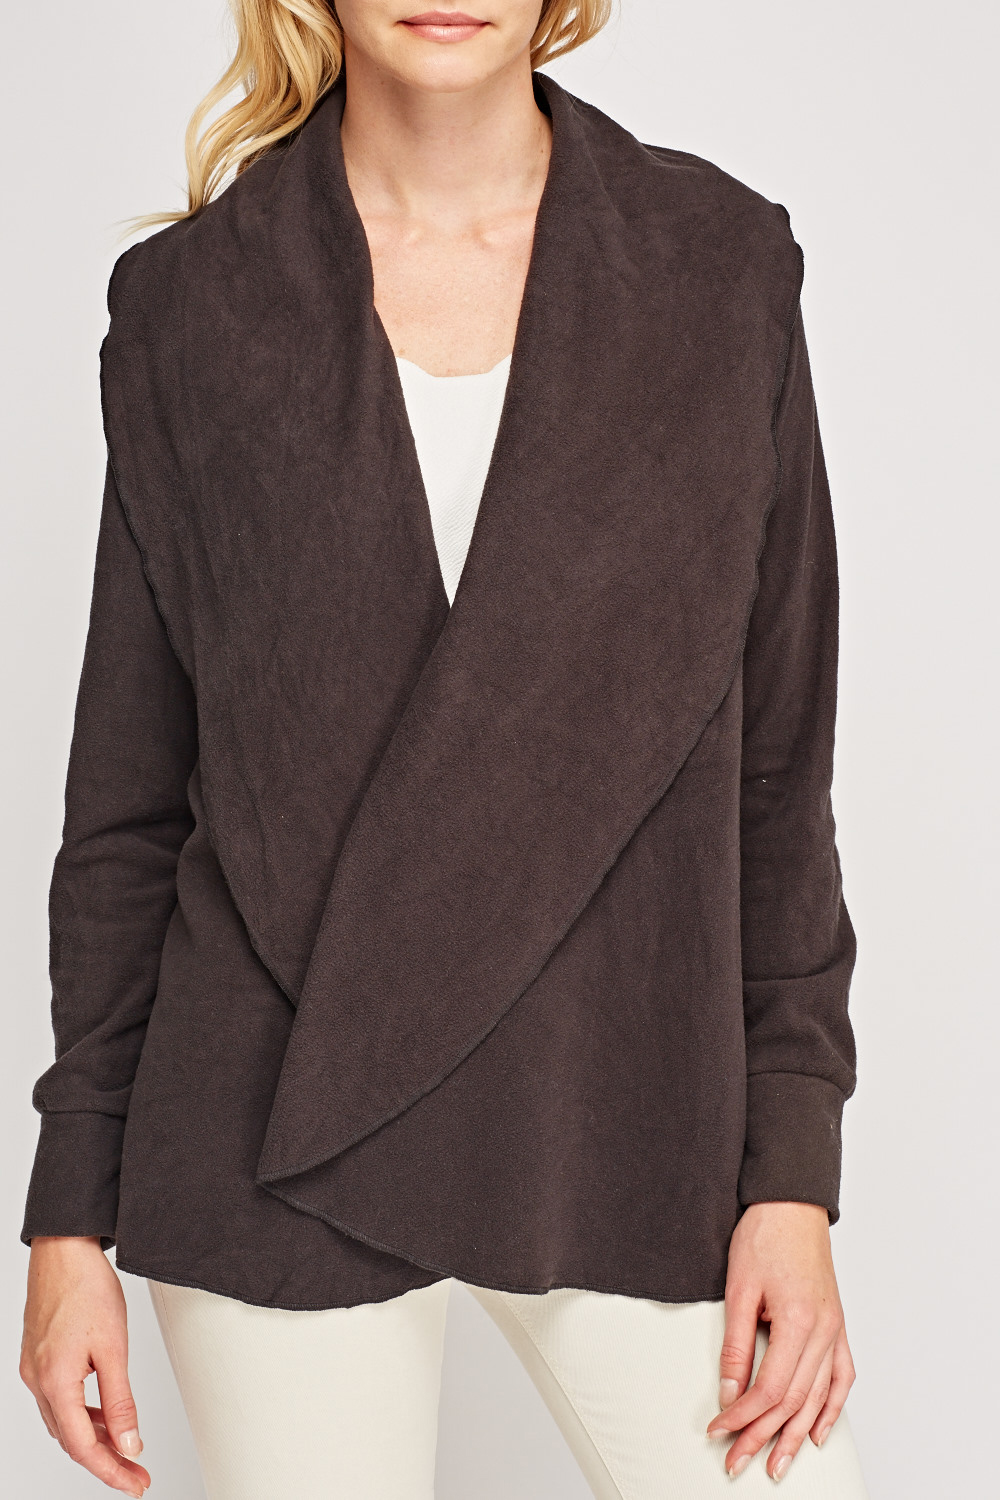 Fleece Waterfall Cardigan - Just £5